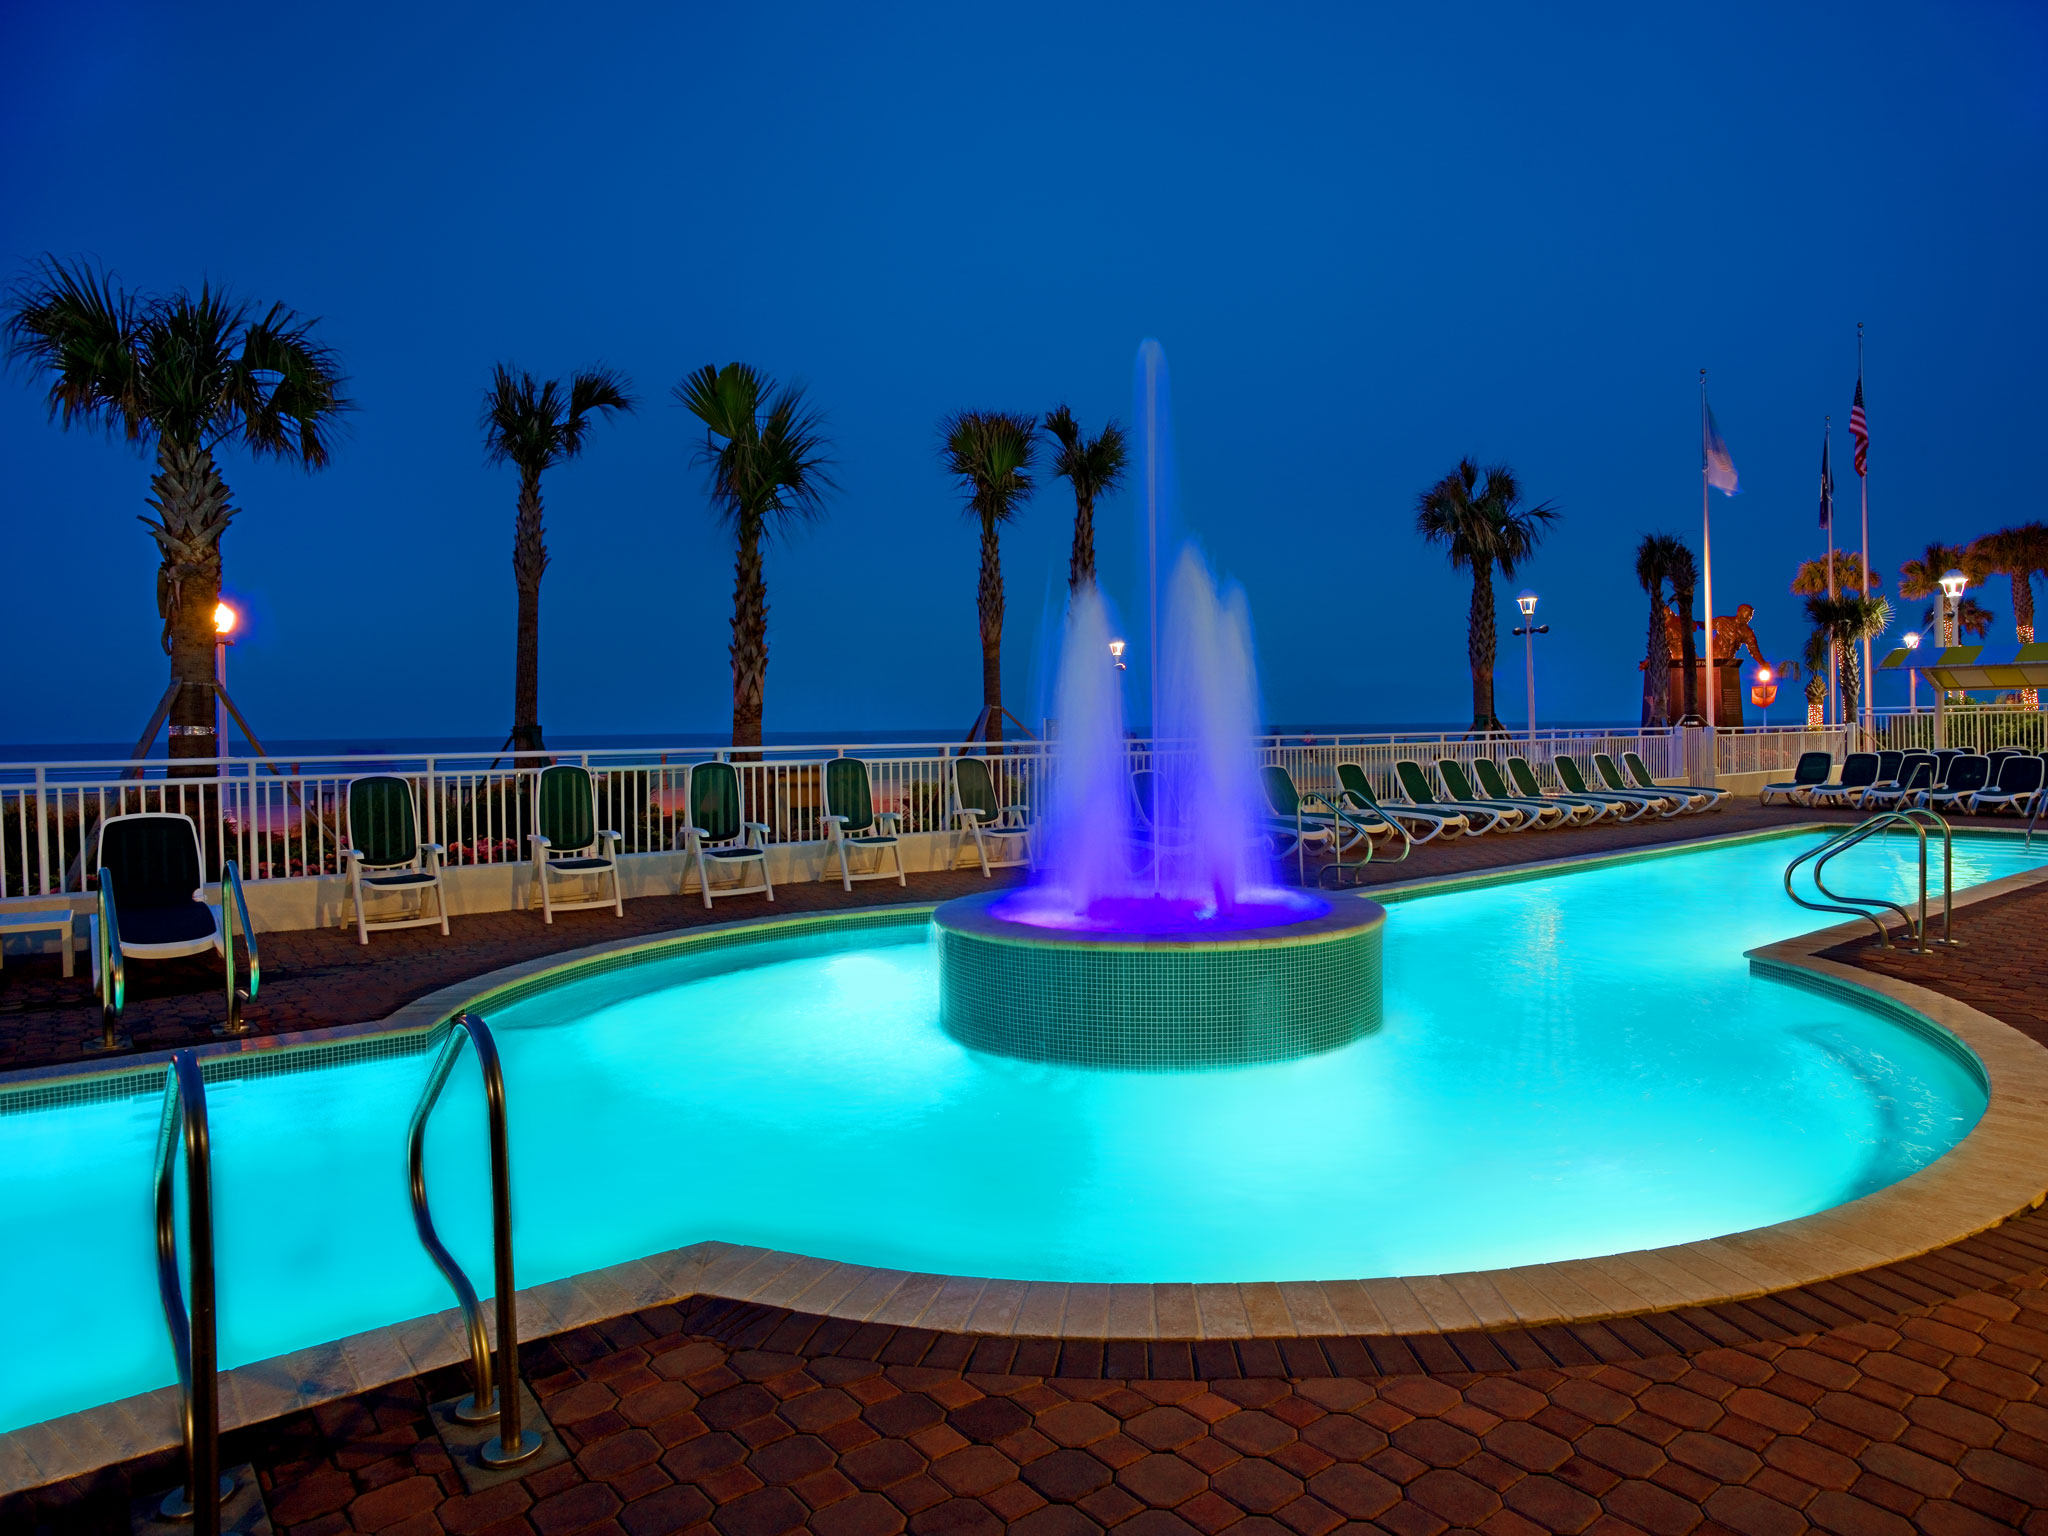 virginia beach, va hotels | sheraton virginia beach oceanfront hotel